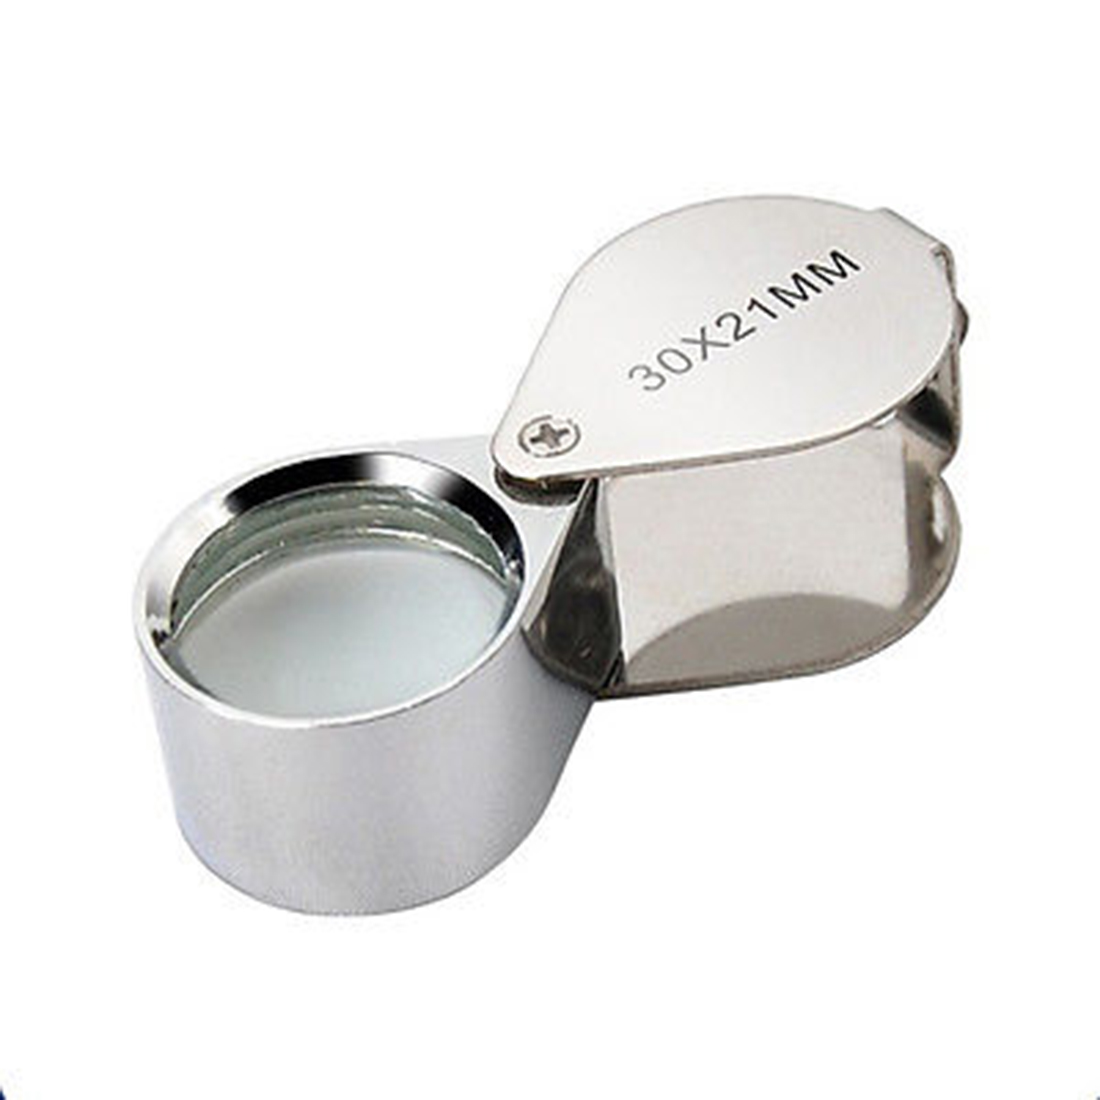 Silvery 30X-21mm Jewelry Magnifying Glass Magnifier Jewelers Loupe